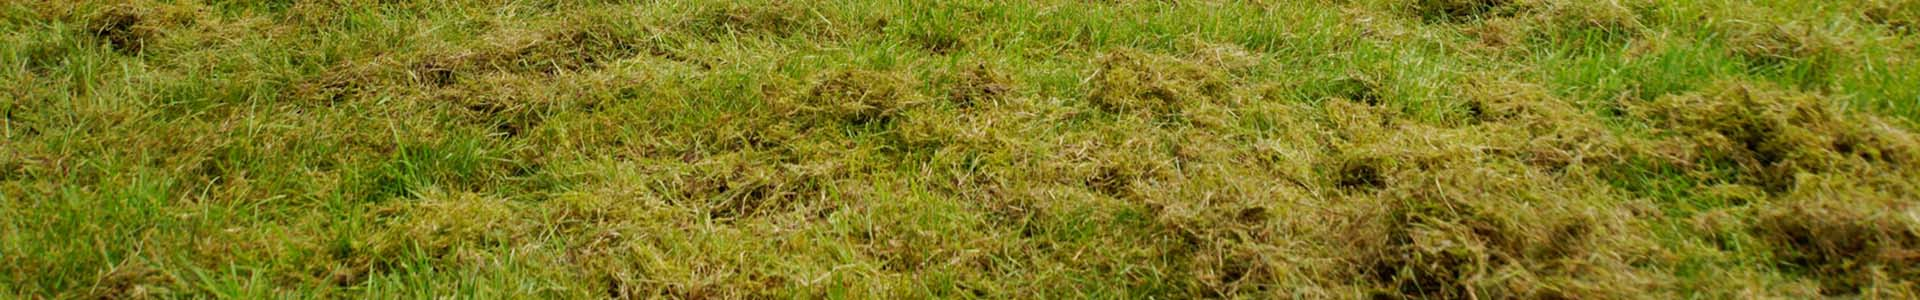 Scarification of Lawn